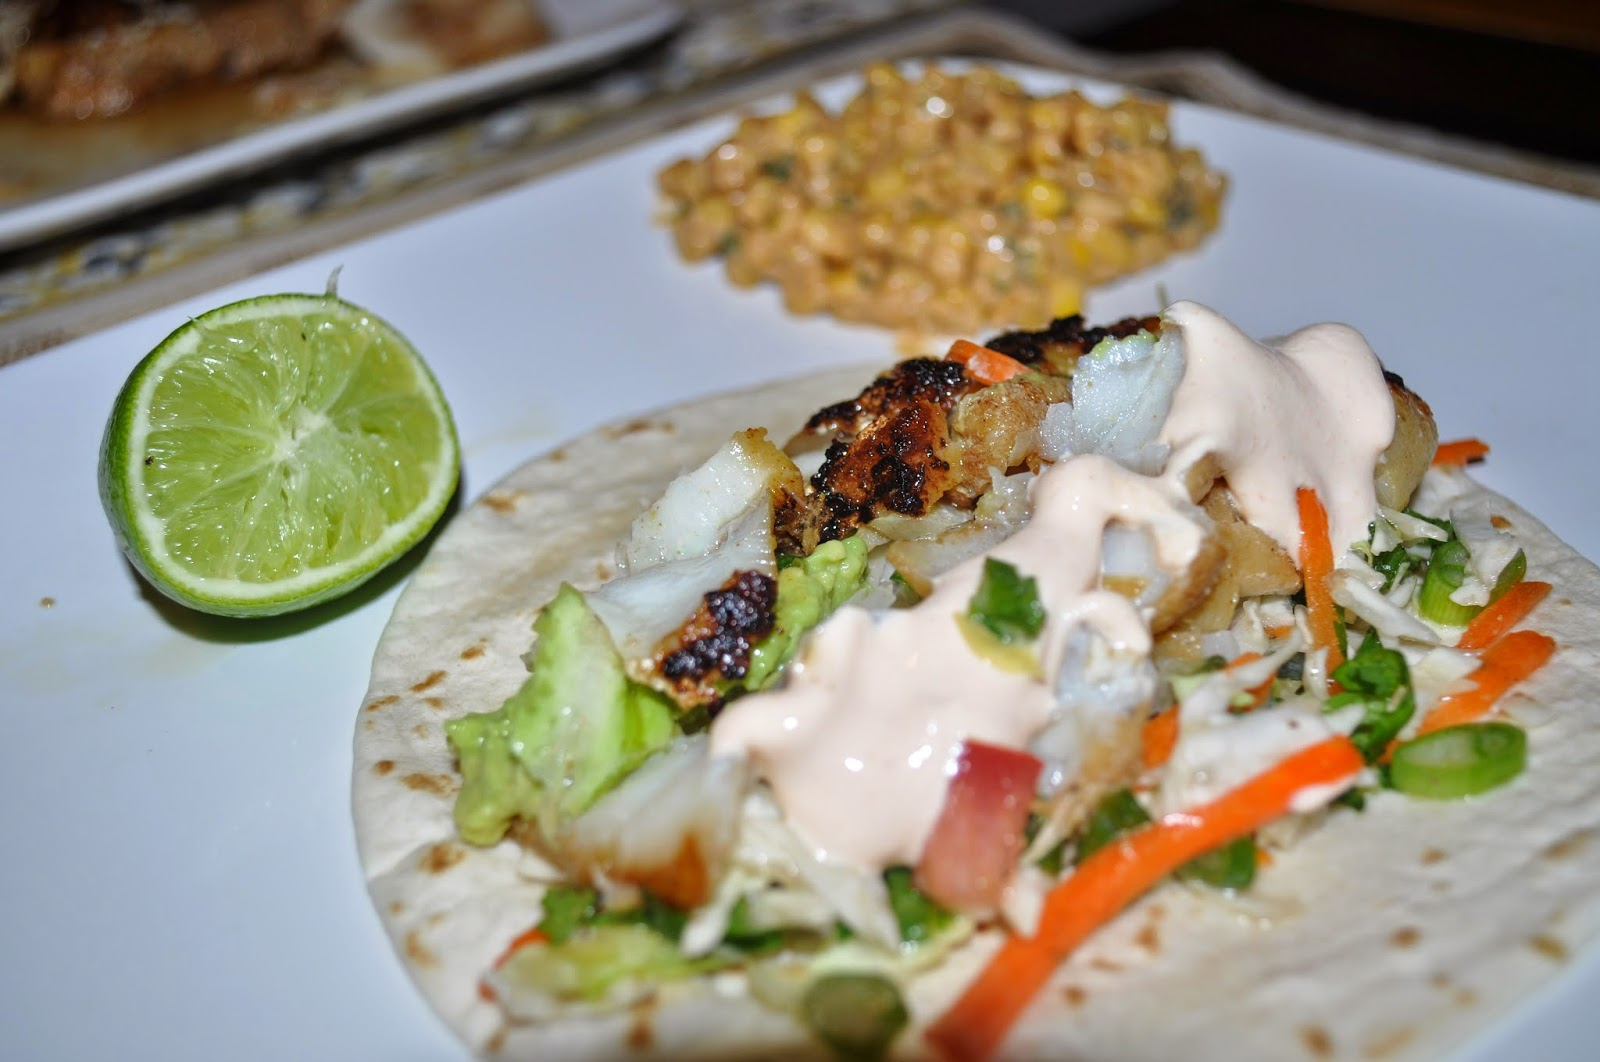 http://carriushome.blogspot.com/2015/01/fish-tacos-with-spicy-sriracha-sour.html